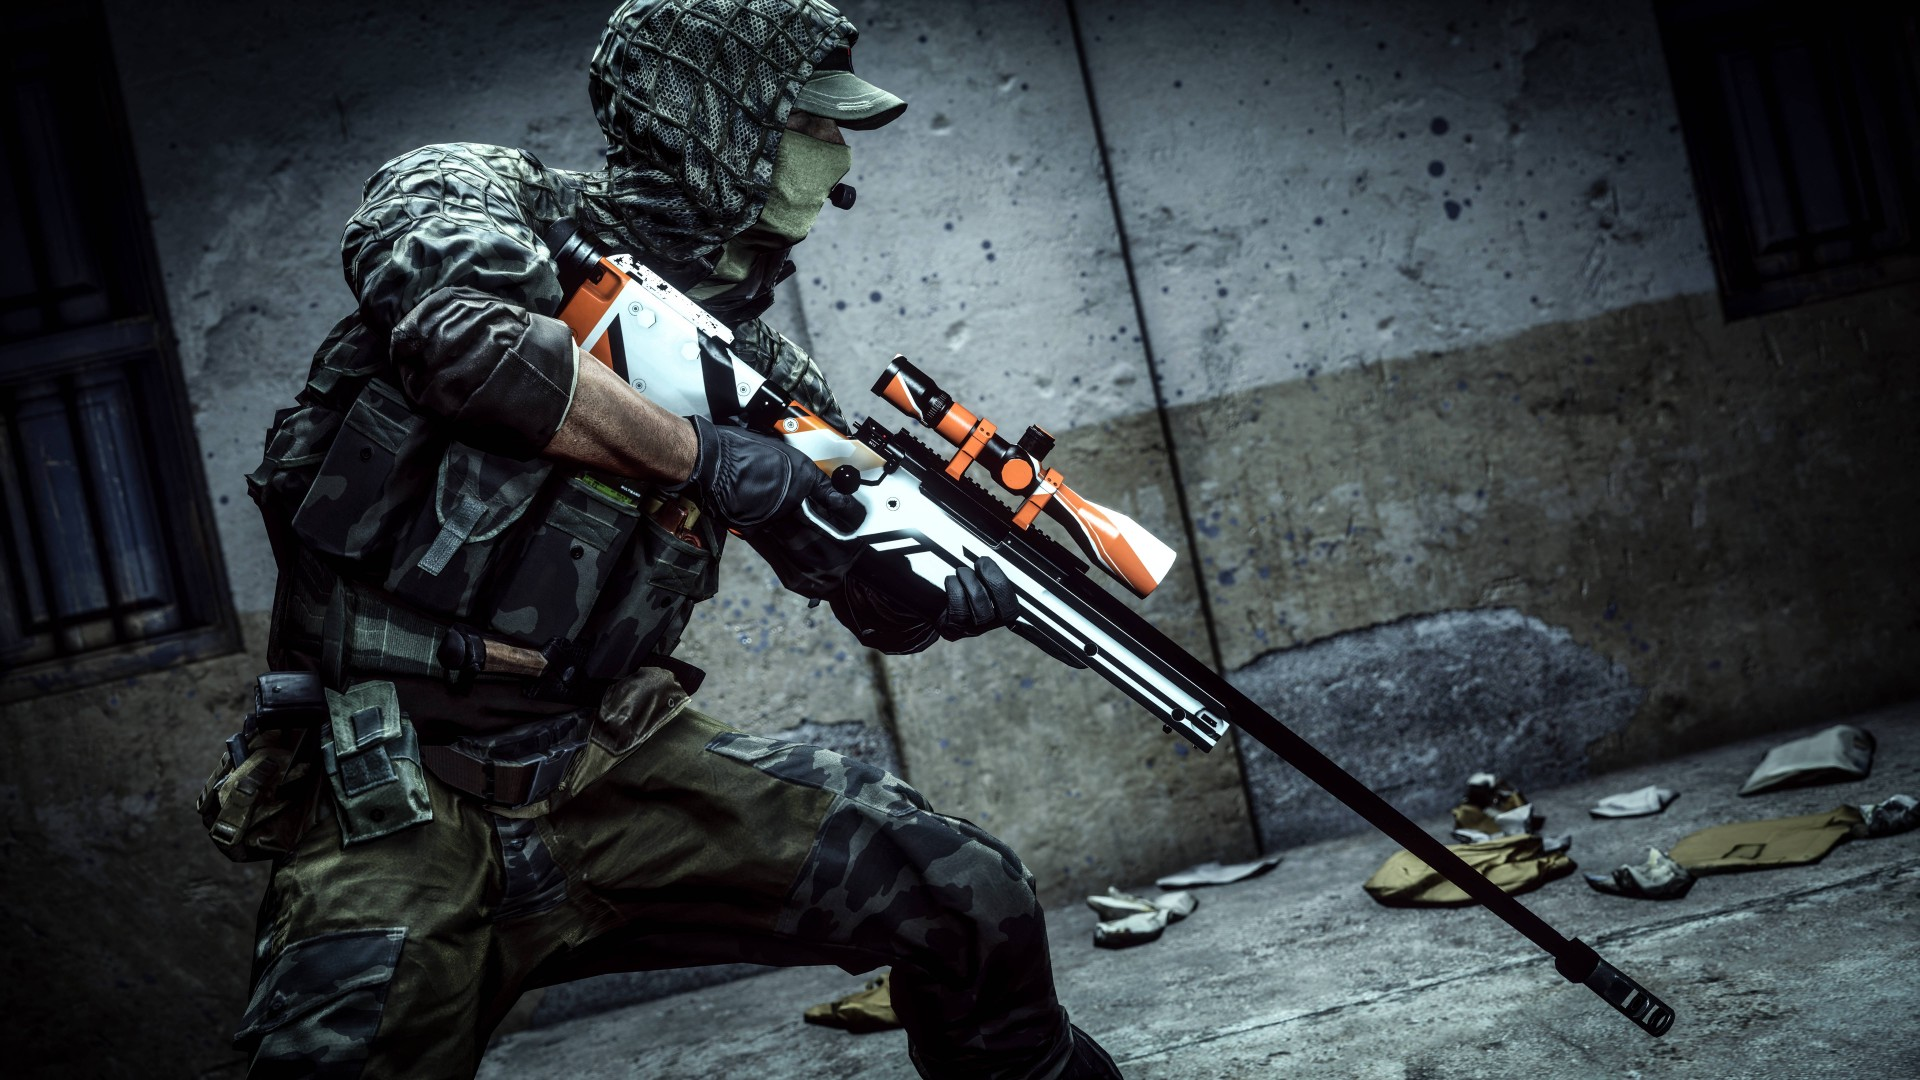 wallpaper ultra hd 8k games,action adventure game,soldier,shooter game,military,pc game